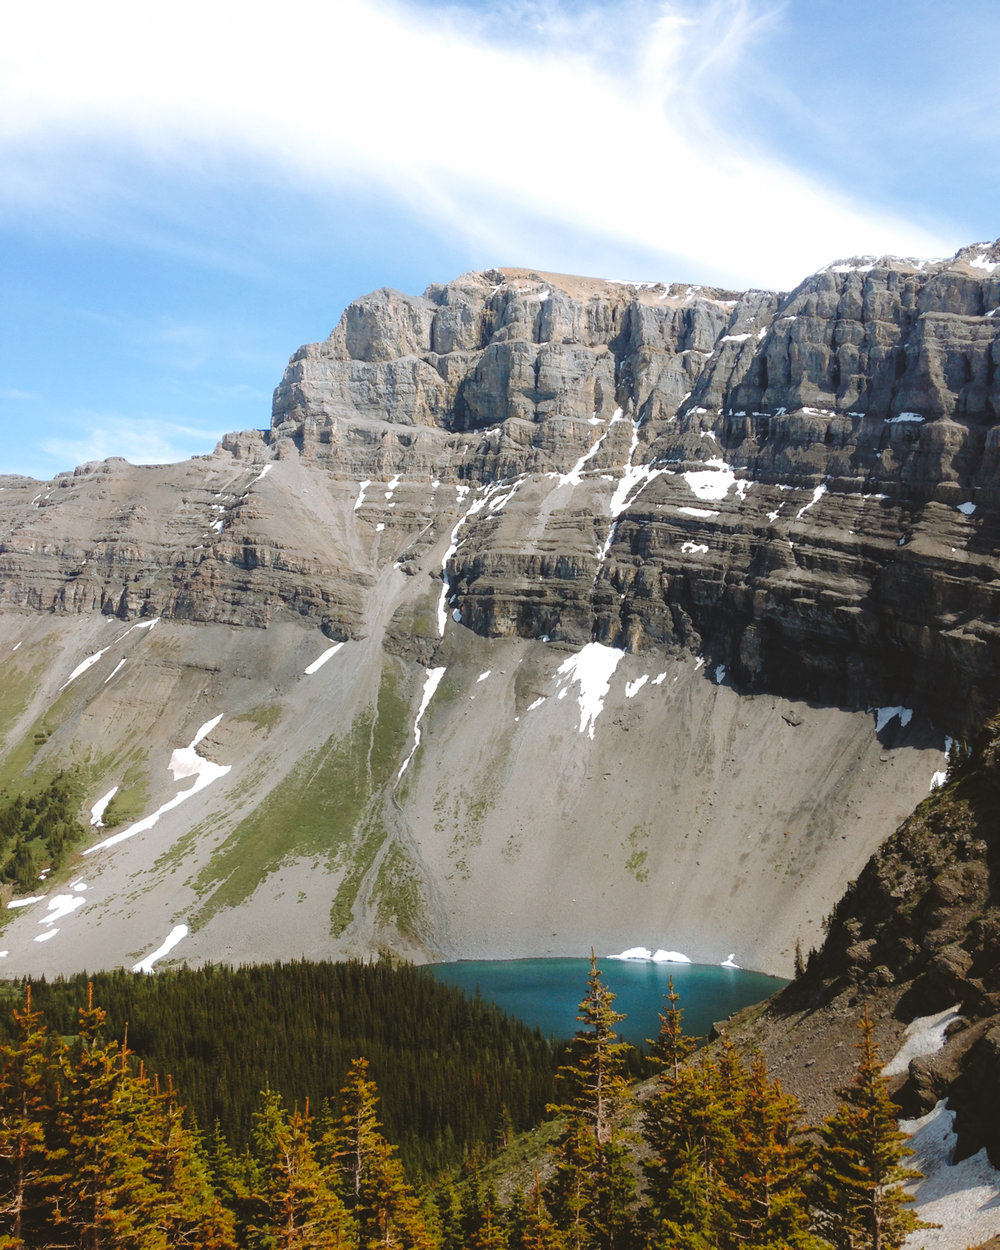 Looking down on Bourgeau Lake from the hike up to Harvey Pass